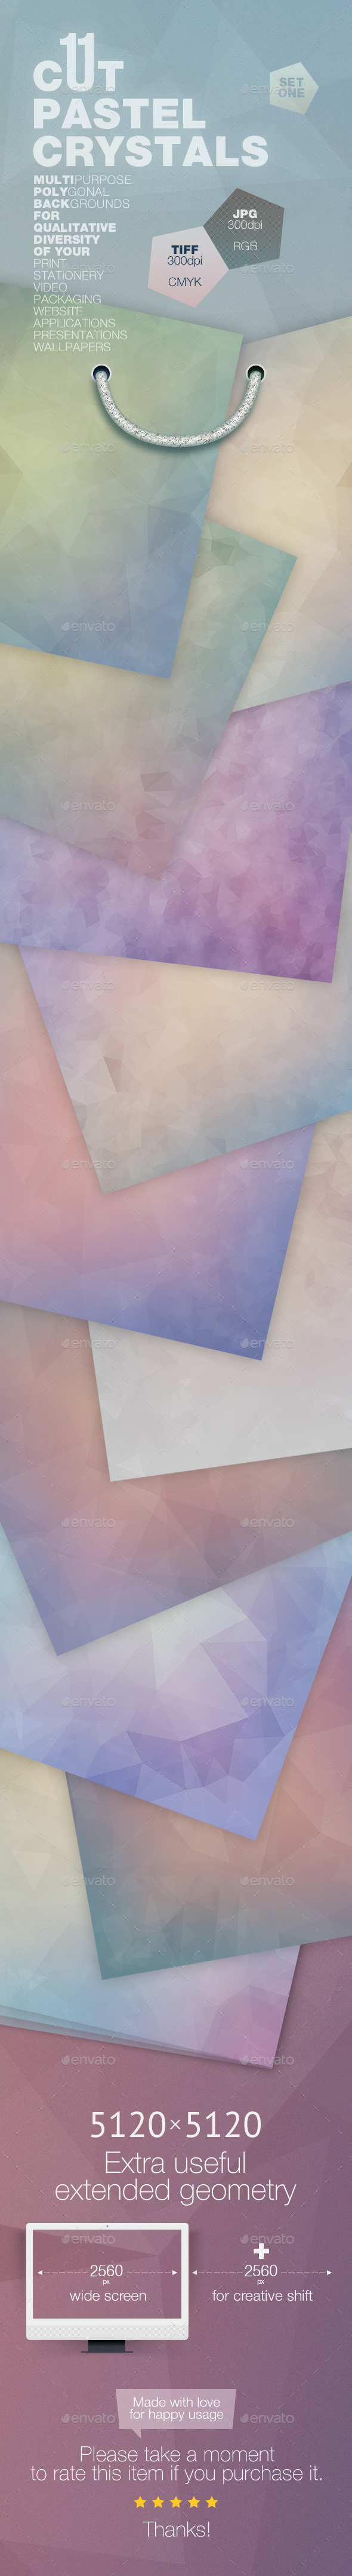 GraphicRiver 11 Cut Pastel Crystals Backgrounds 11877959